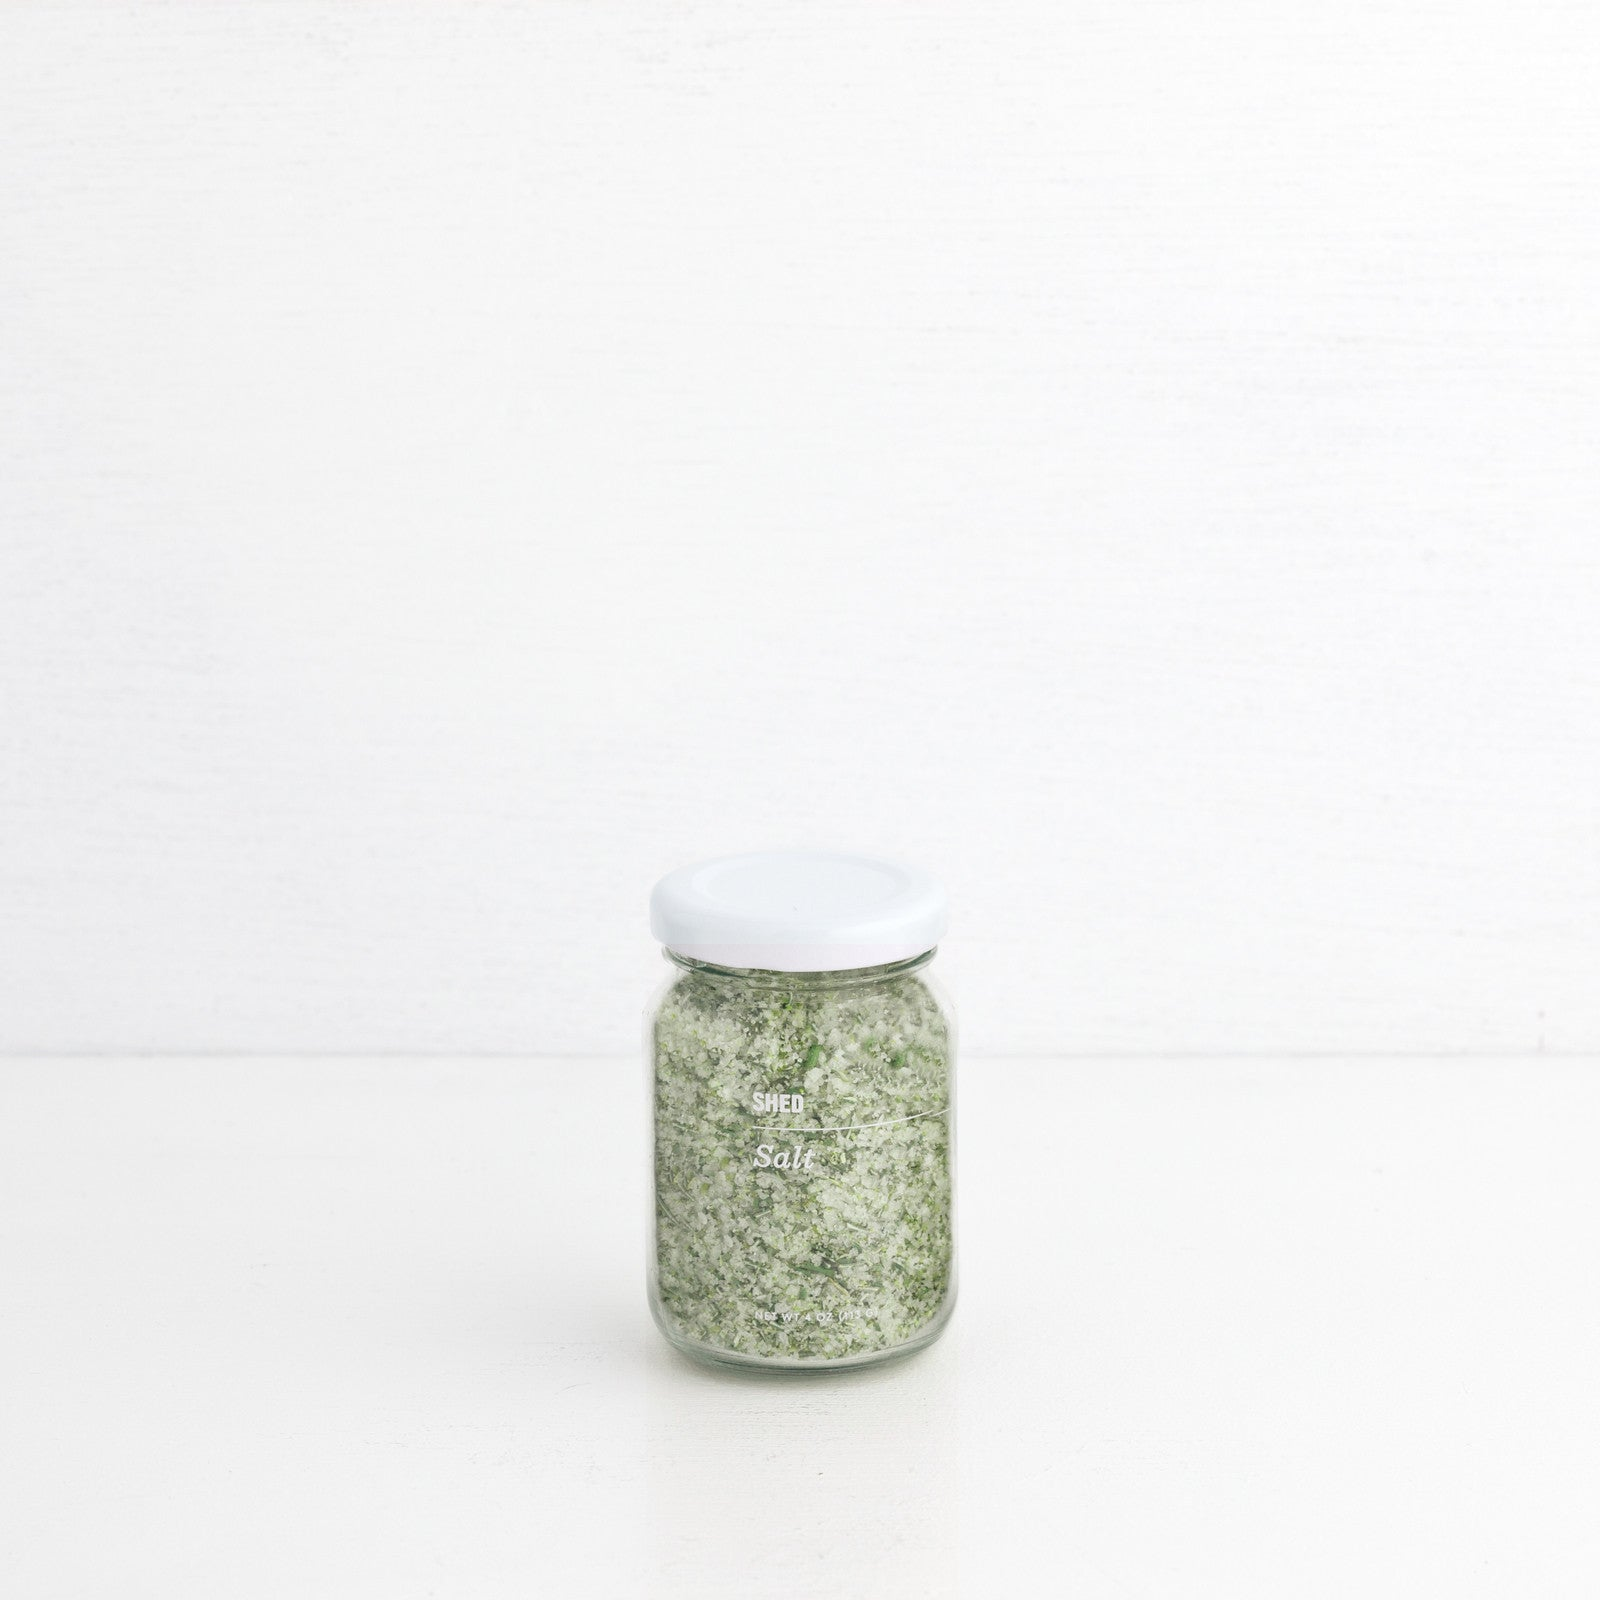 SHED Green Salt